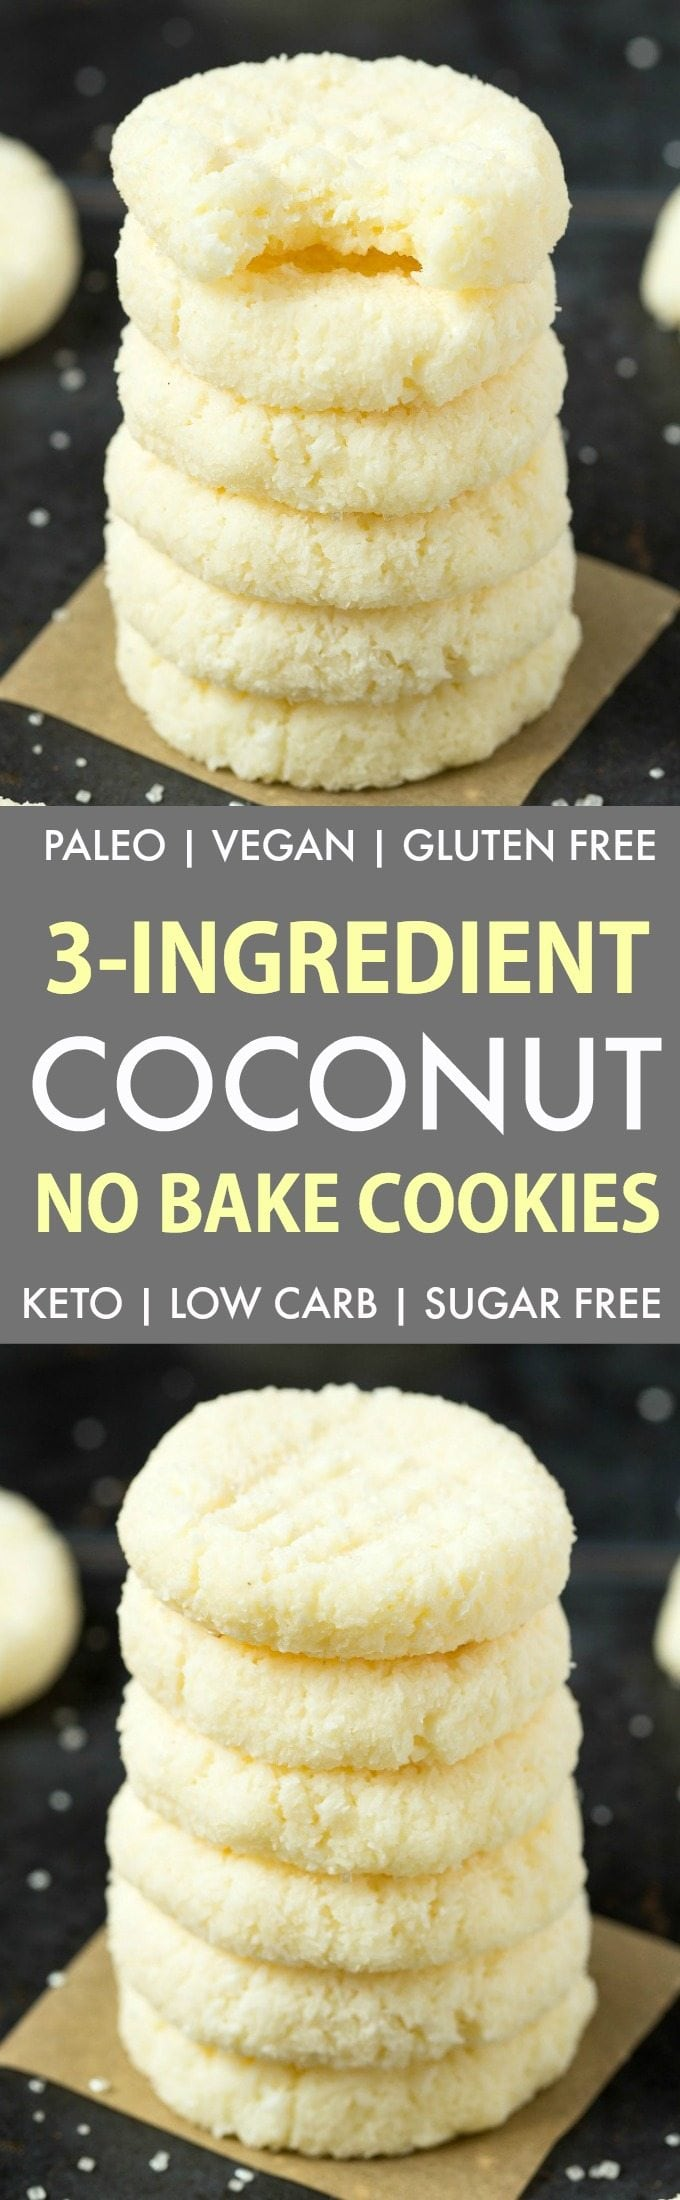 3-Ingredient No Bake Coconut Cookies (Keto, Paleo, Vegan, Sugar Free)- Make these super simple no bake cookies in under 5 minutes, to satisfy your sweet tooth the healthy way! Low carb and tastes like a coconut candy bar! #lowcarbrecipe #nobakecookies #ketodessert #lowcarb #sugarfree | Recipe on thebigmansworld.com